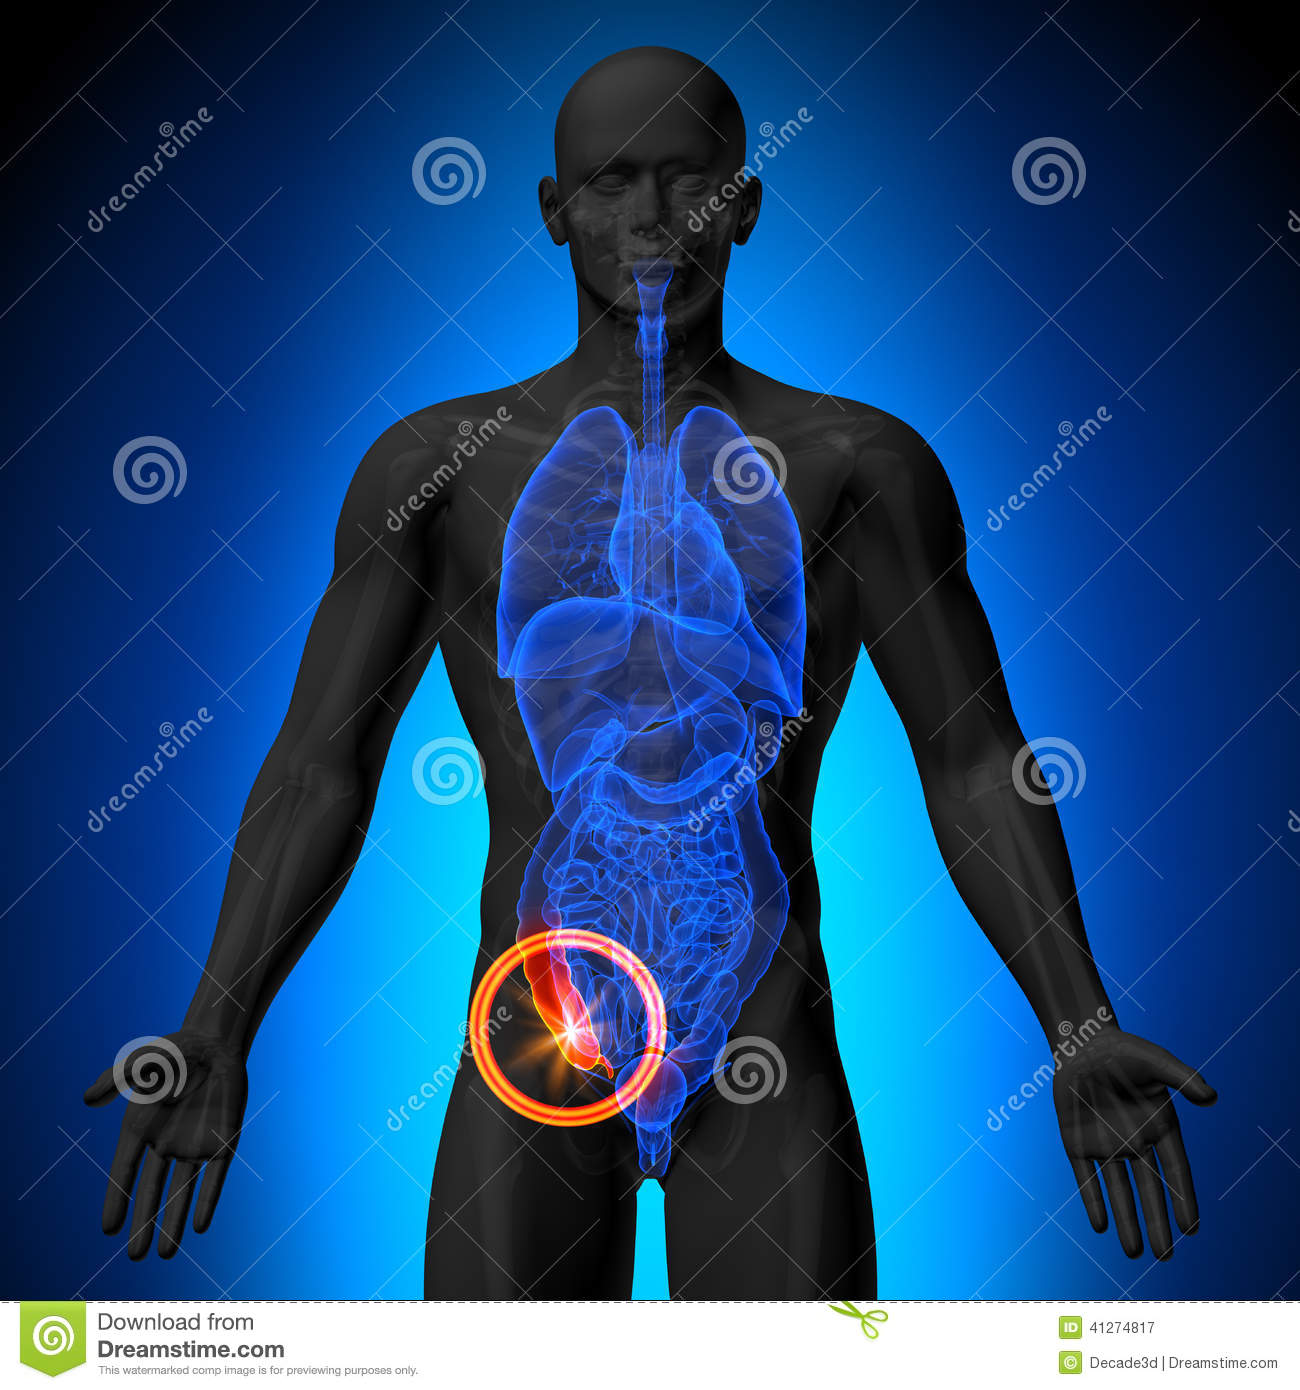 ... Illustration: Appendix - Male anatomy of human organs - x-ray view